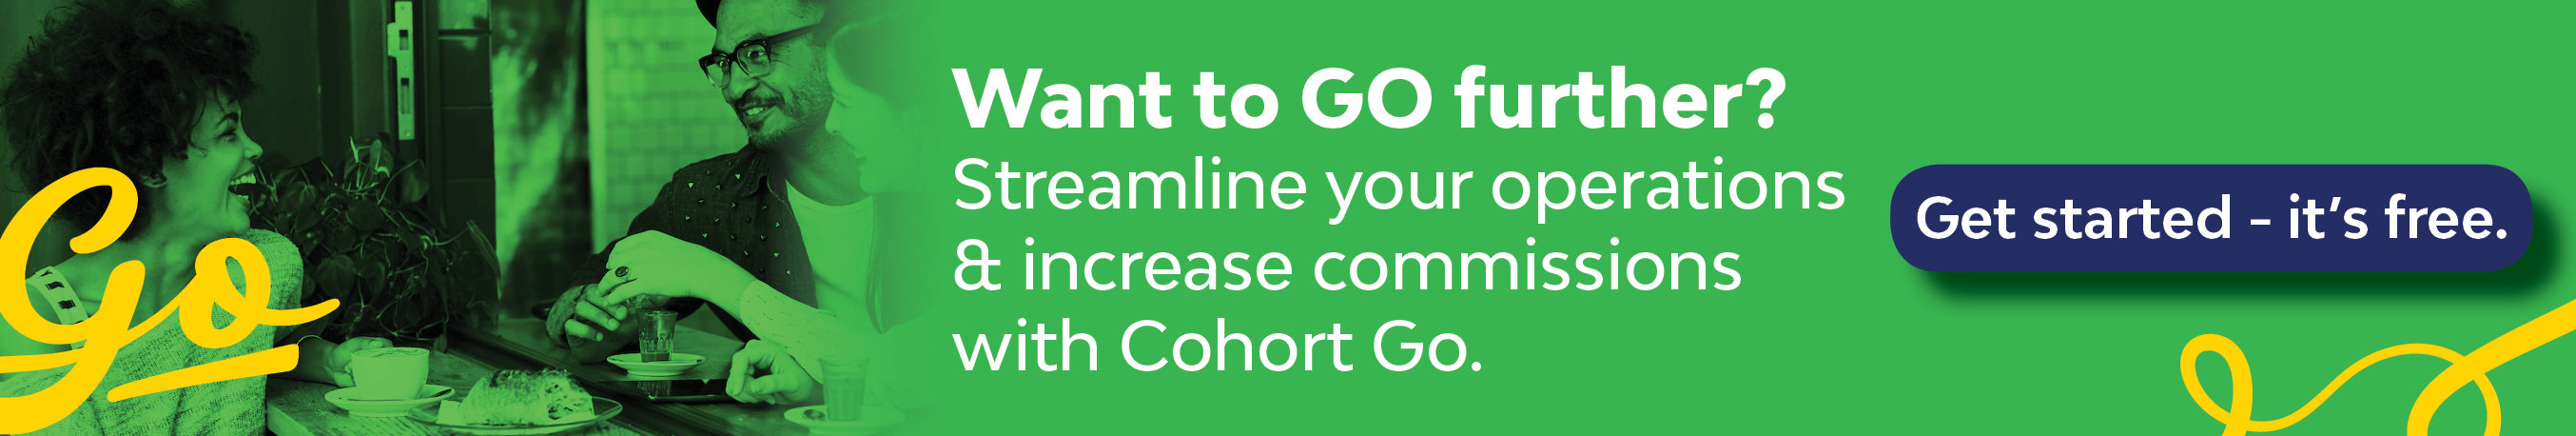 Want to GO further? Streamline your operations and increase commissions with Cohort Go. Get started - it's free.